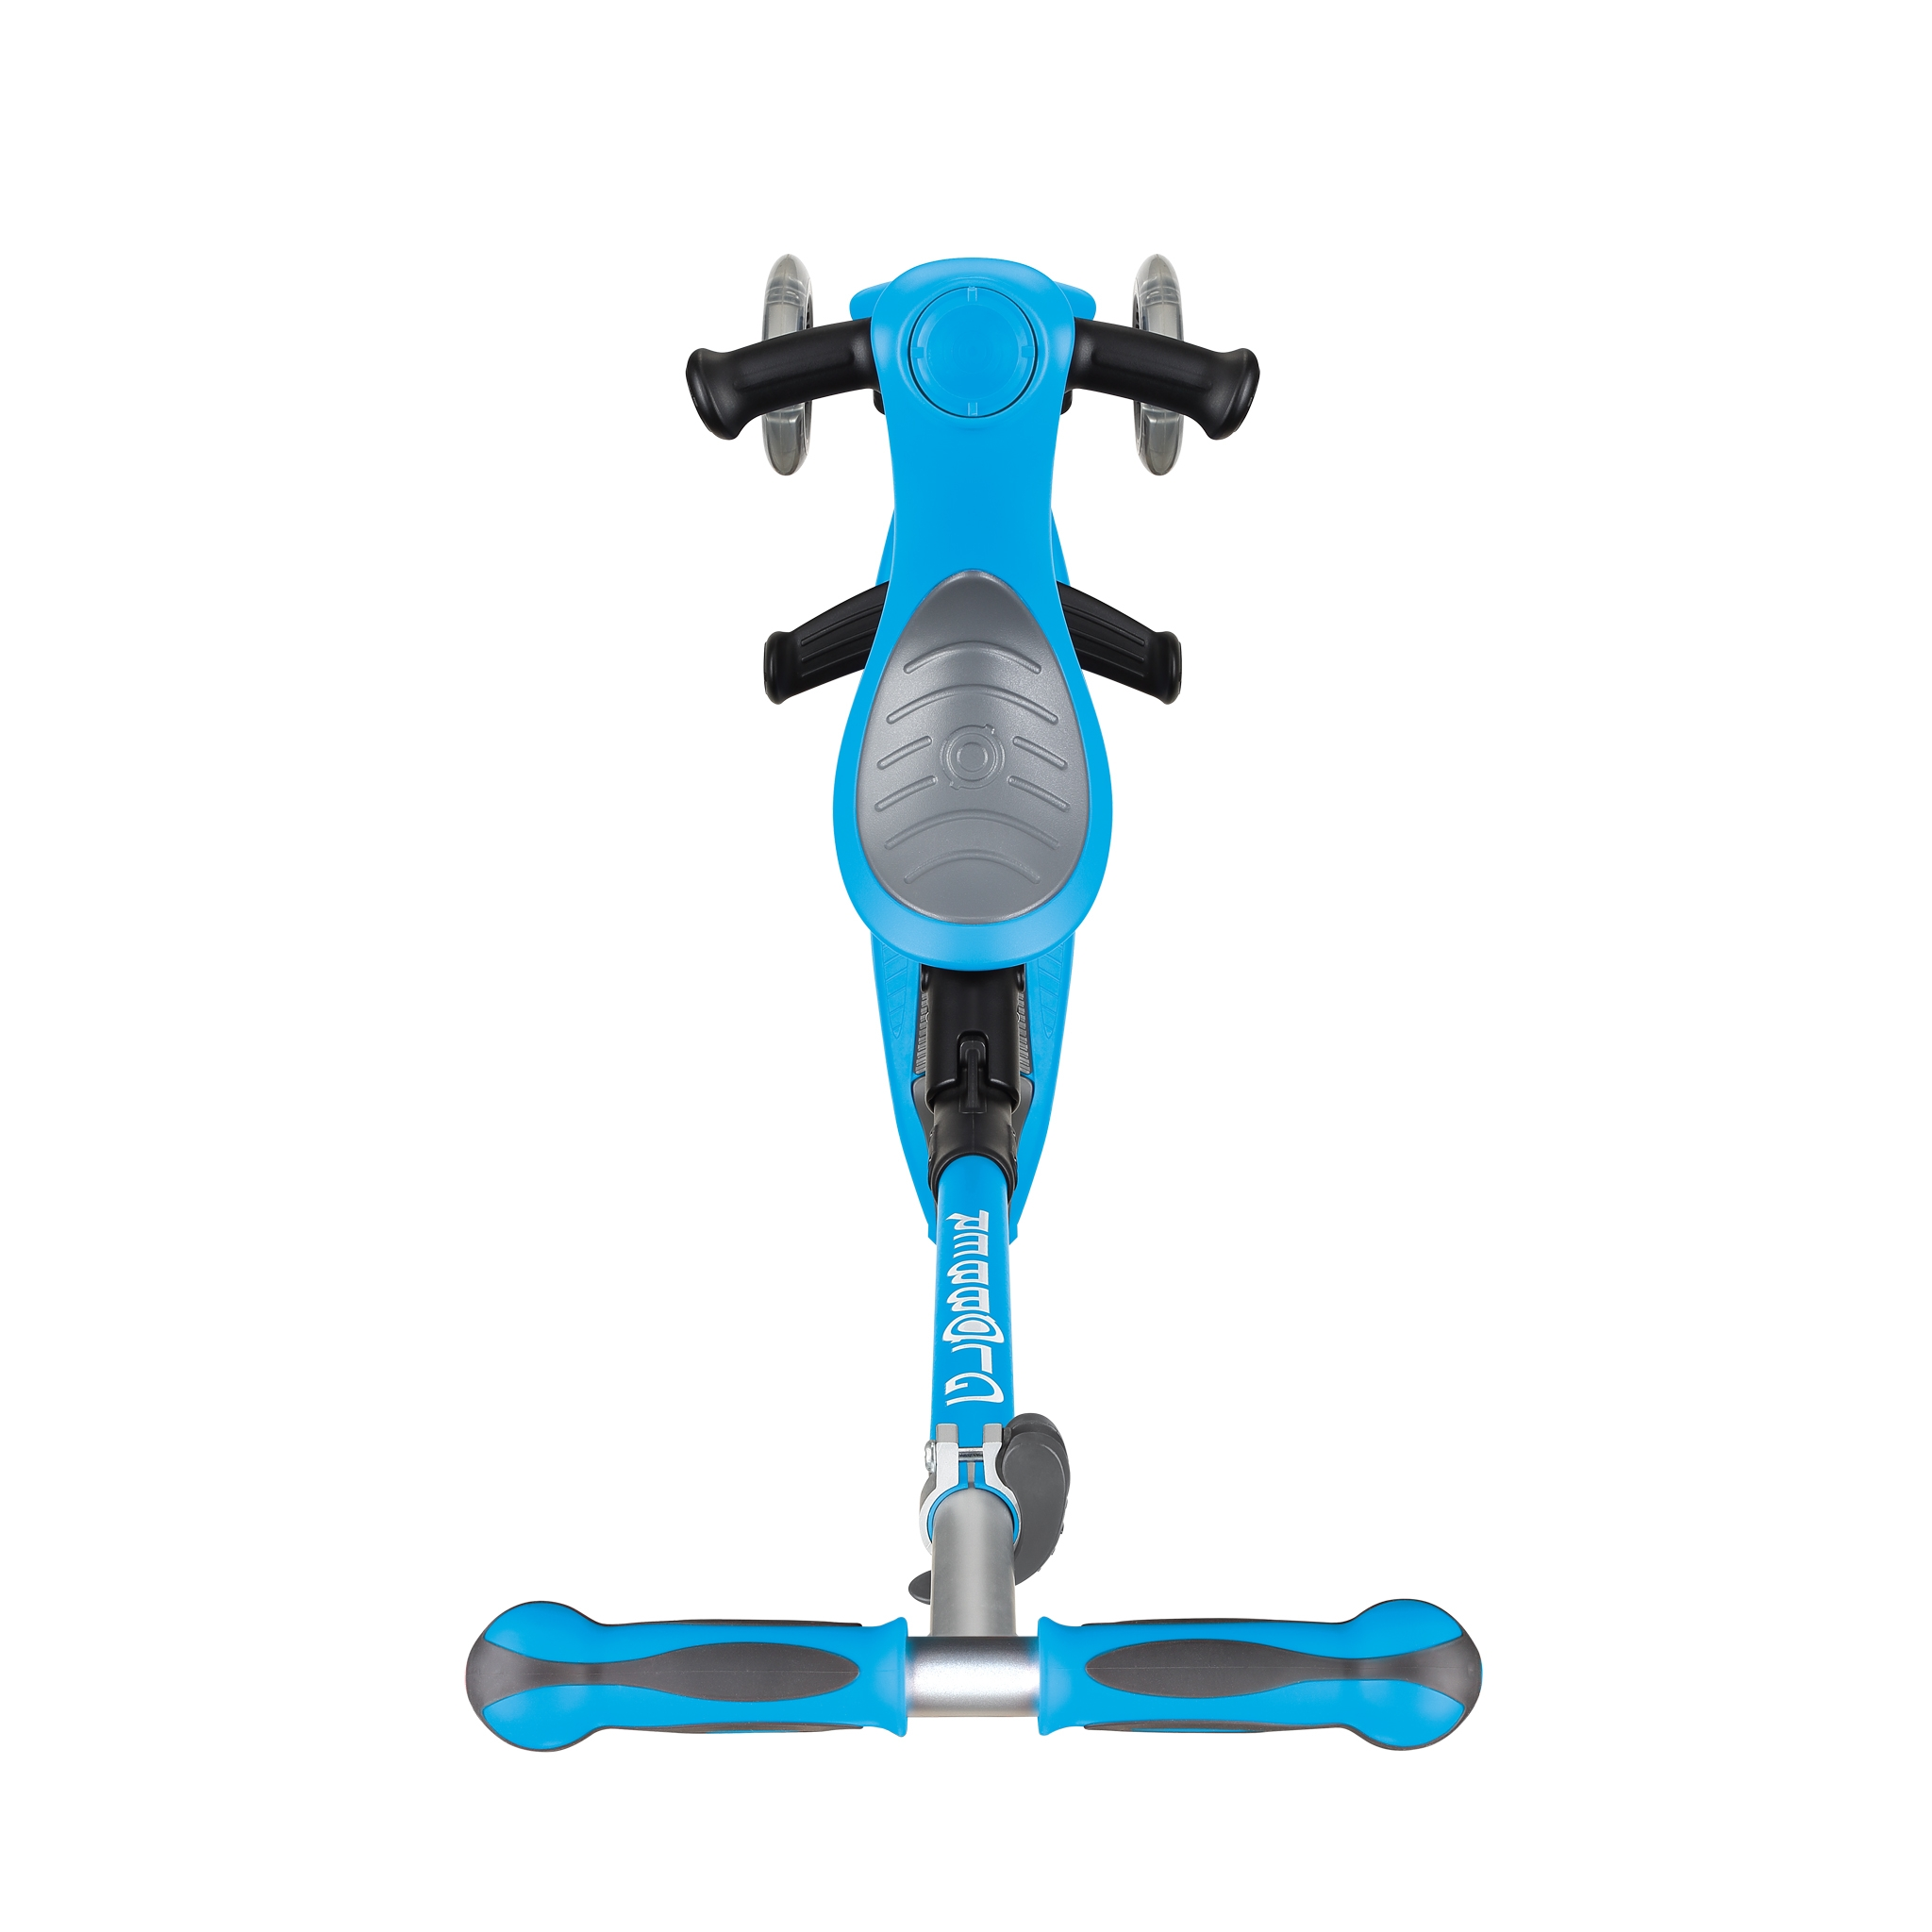 GO-UP-DELUXE-ride-on-walking-bike-scooter-with-extra-wide-3-height-adjustable-seat-sky-blue 2